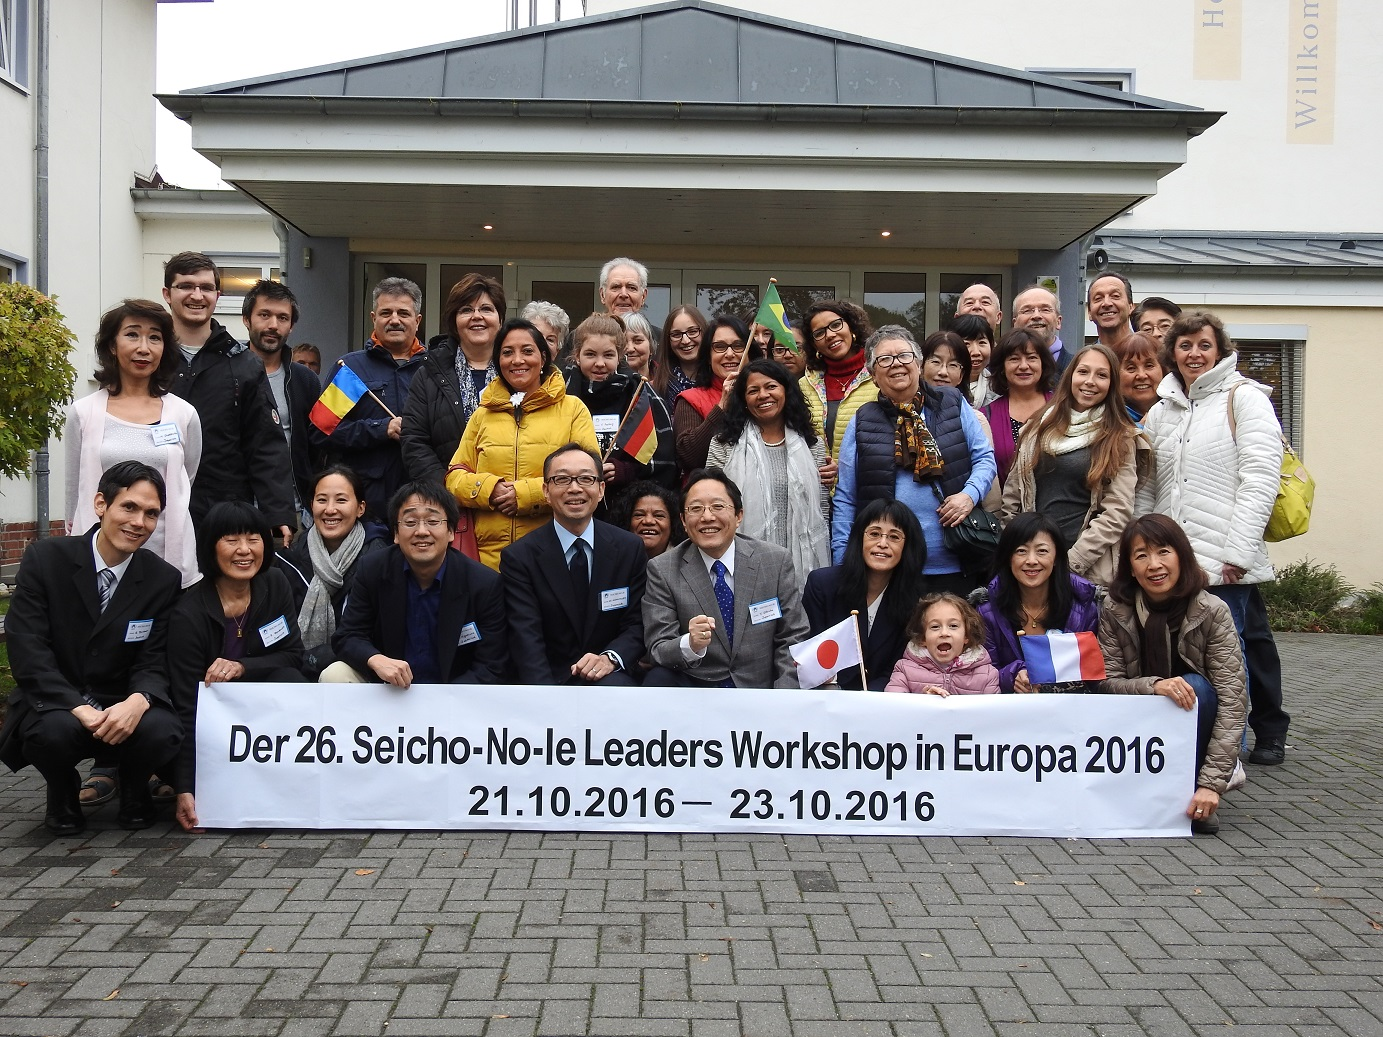 26. Seicho No Ie Leaders Workshop